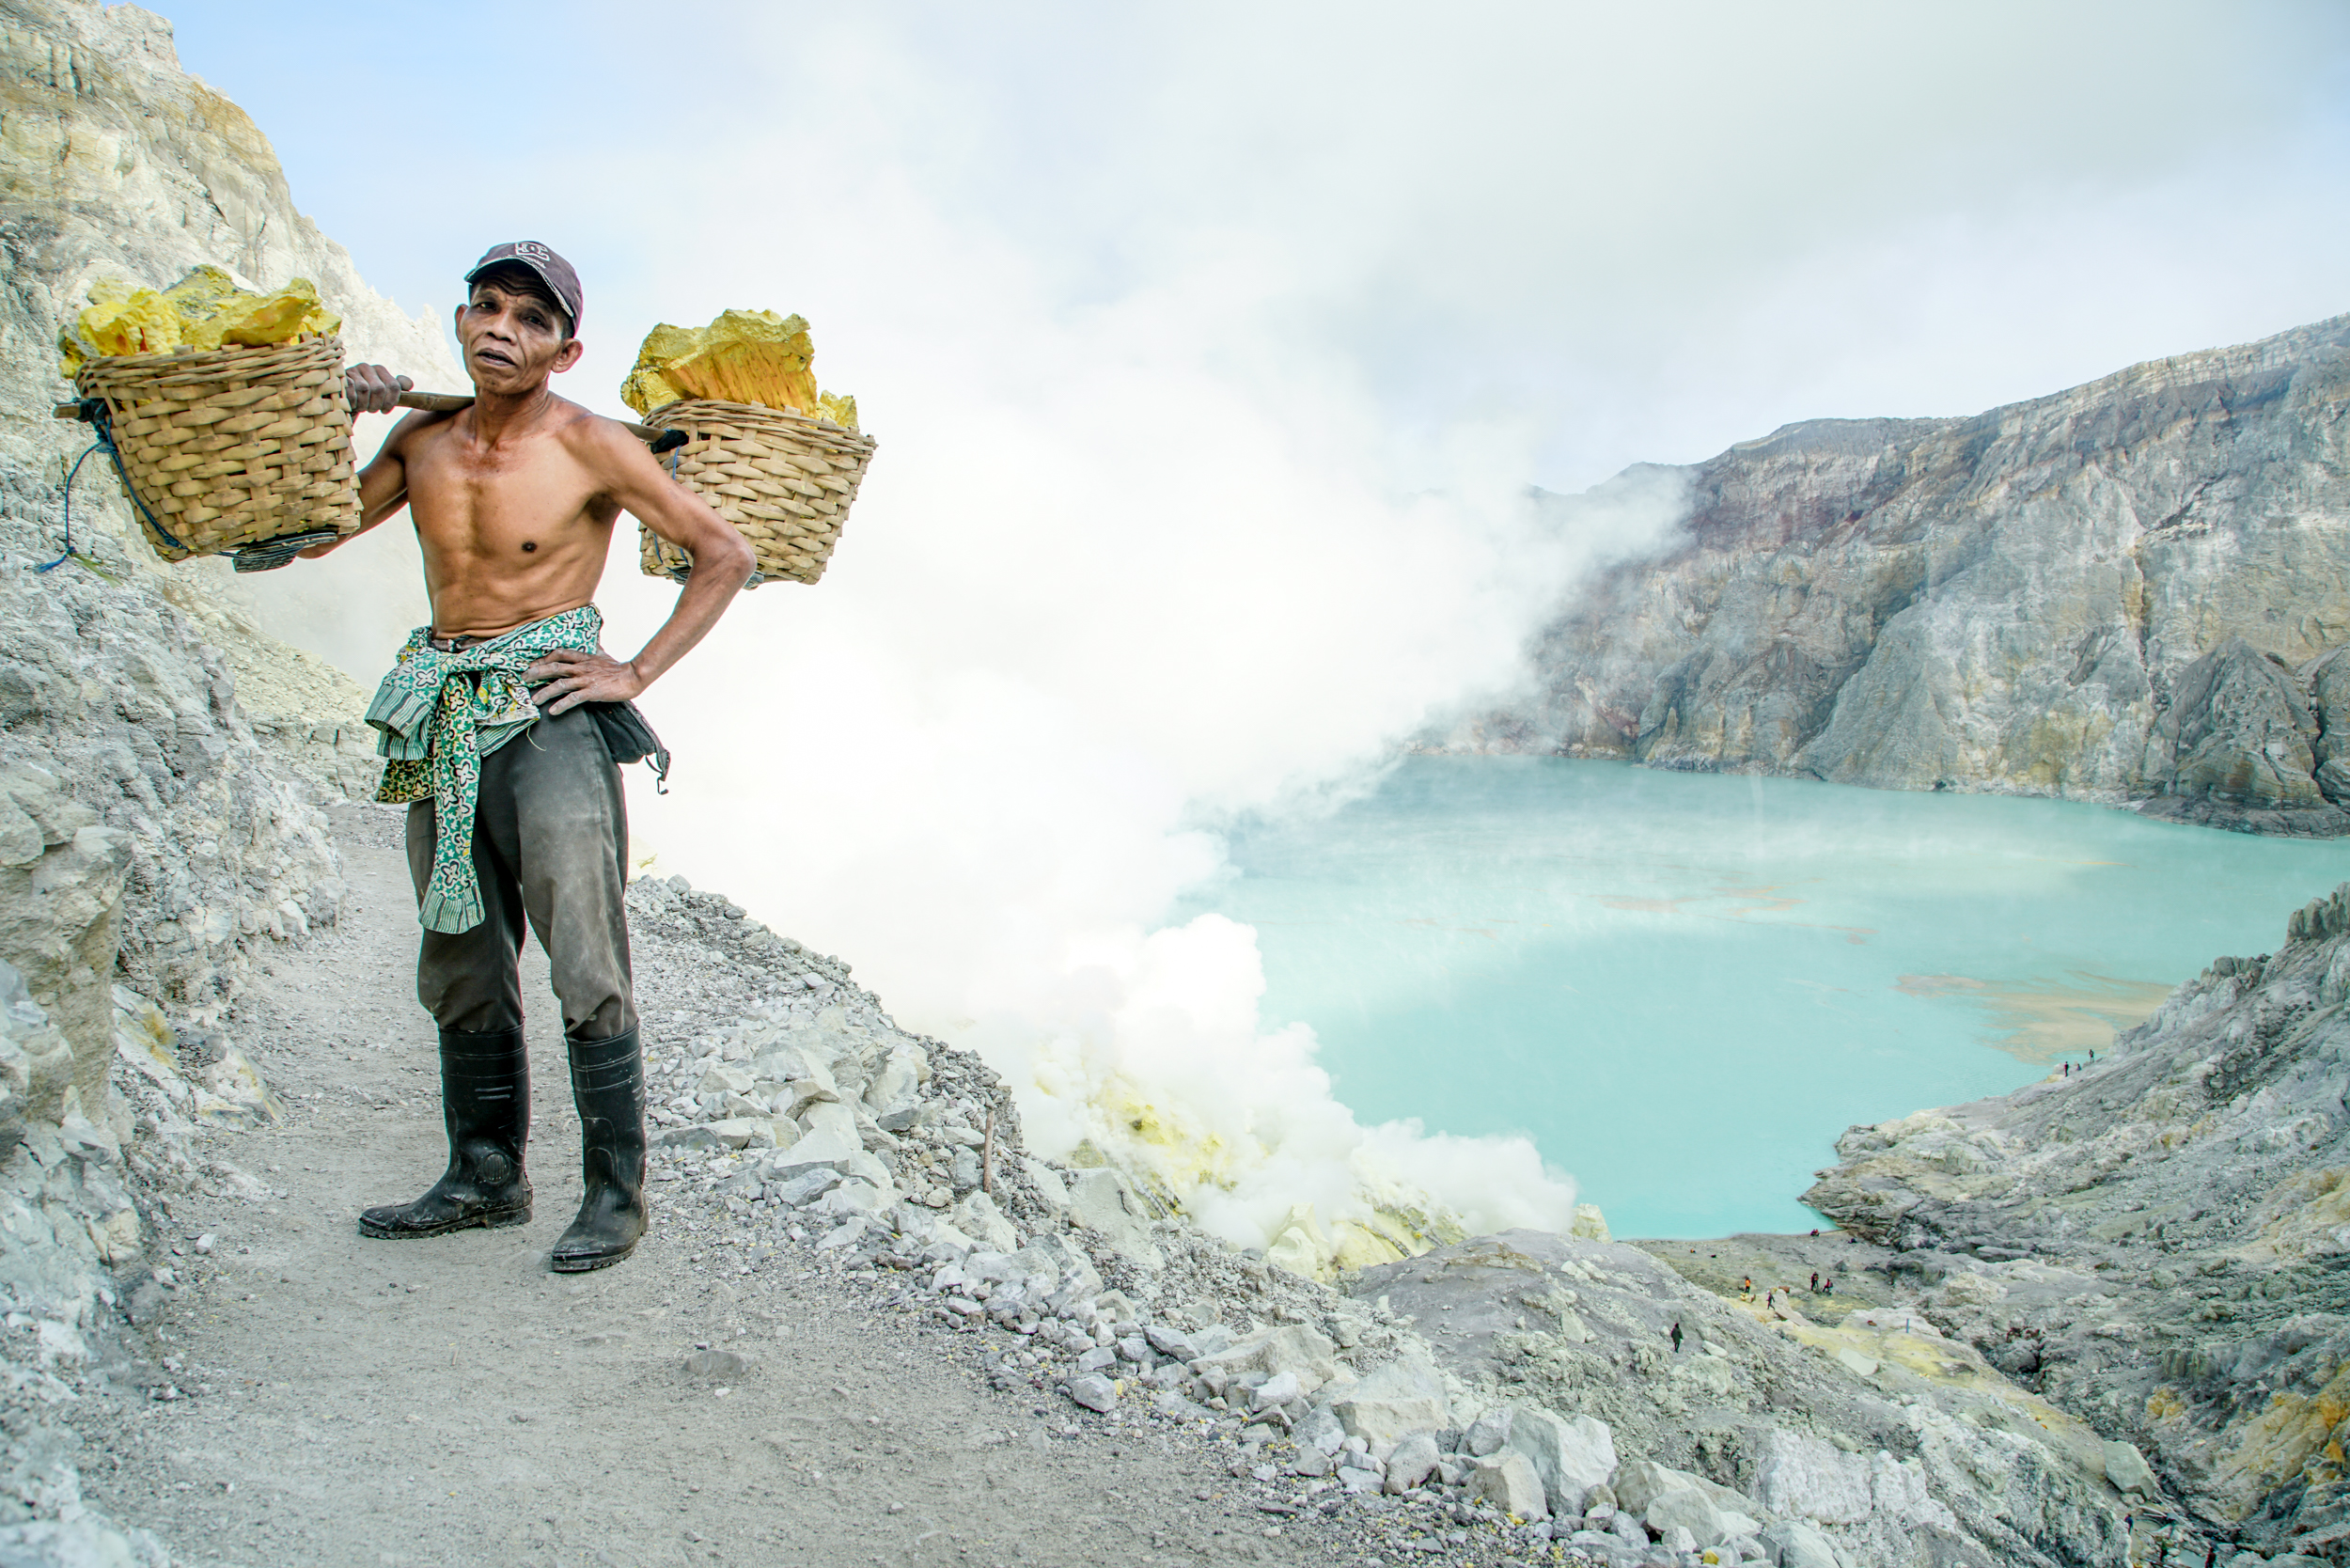 The miners carry up to 130 kilograms of sulfur on their backs out of the crater.